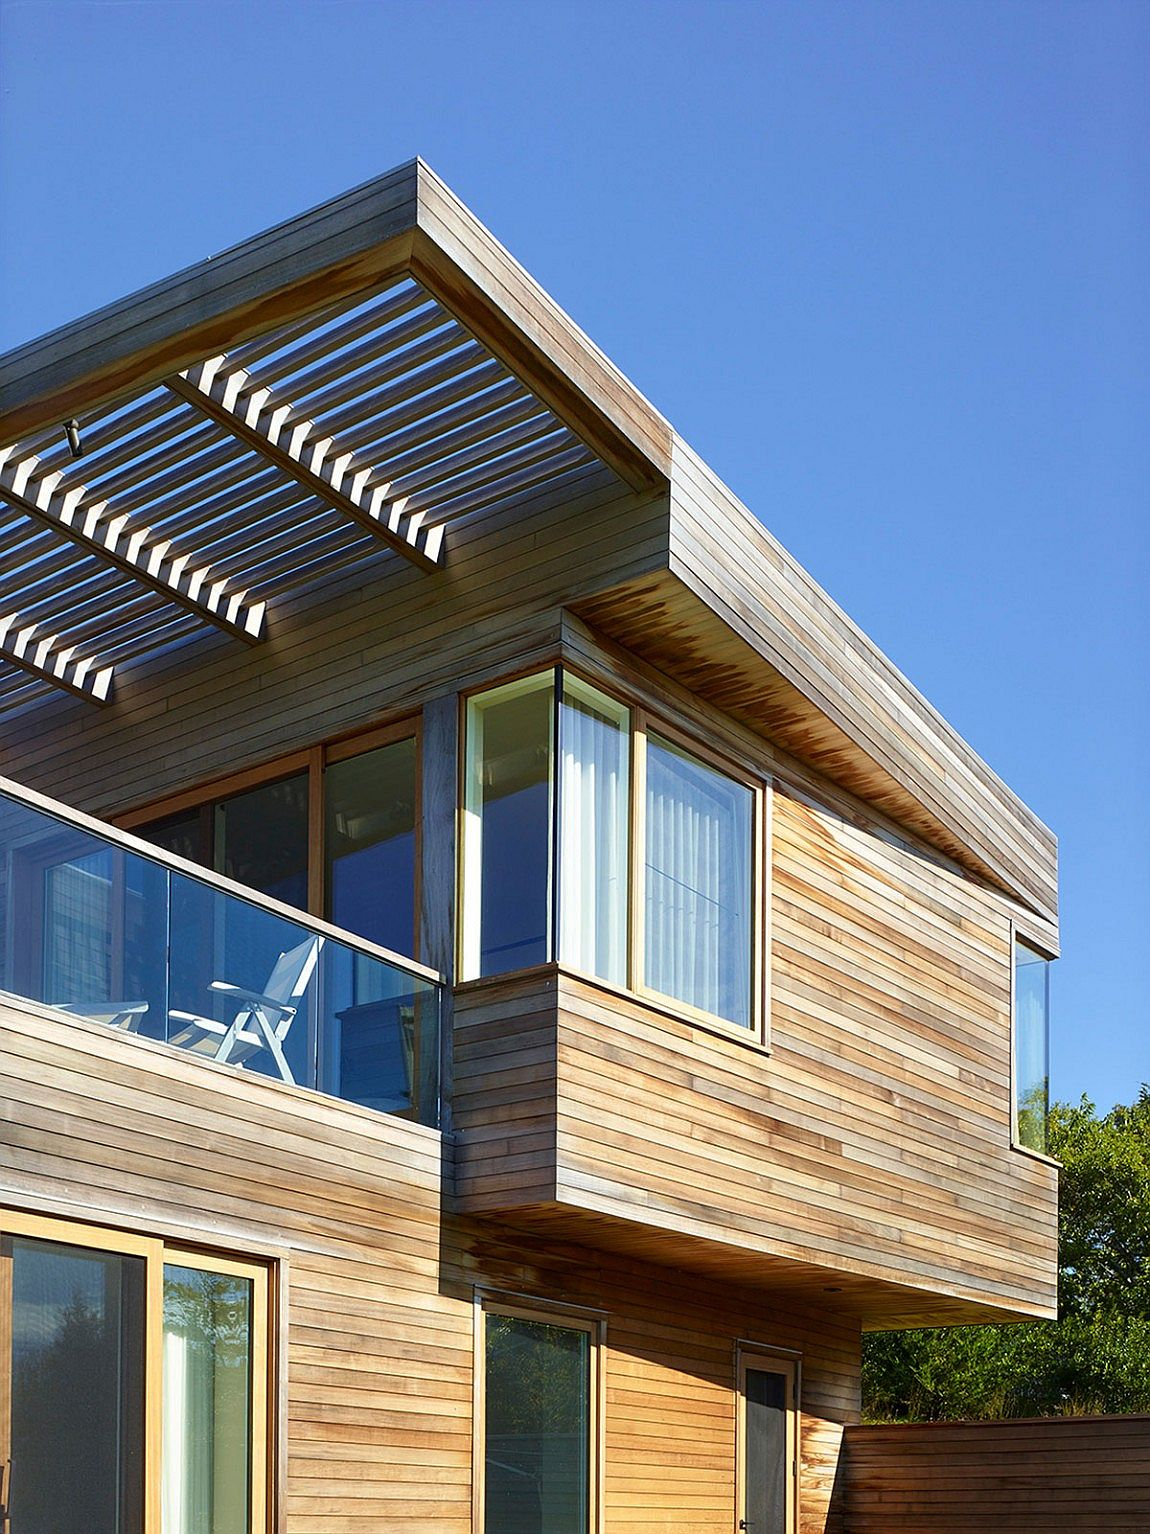 Cedar shiplap adds textural beauty to the exterior of the house